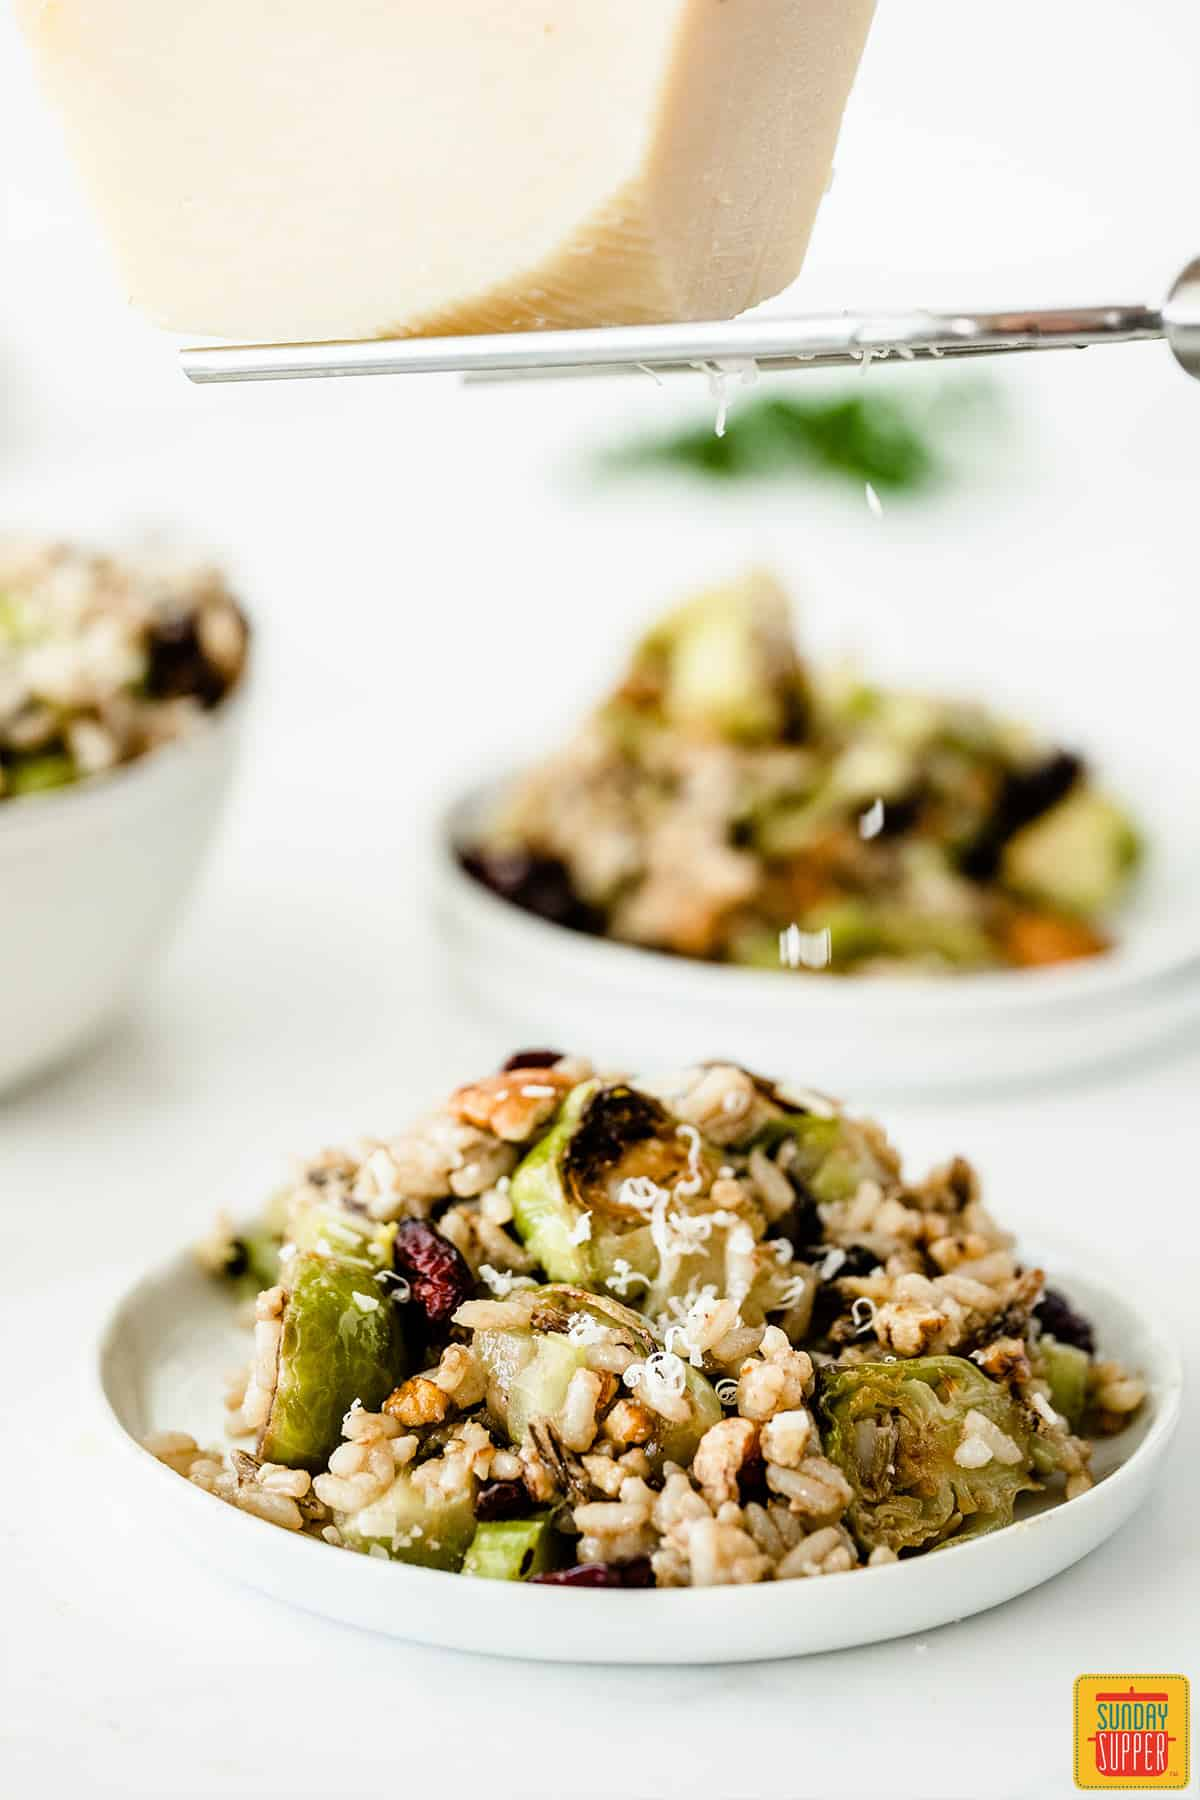 Shaving cheese over roasted brussels sprouts wild rice salad